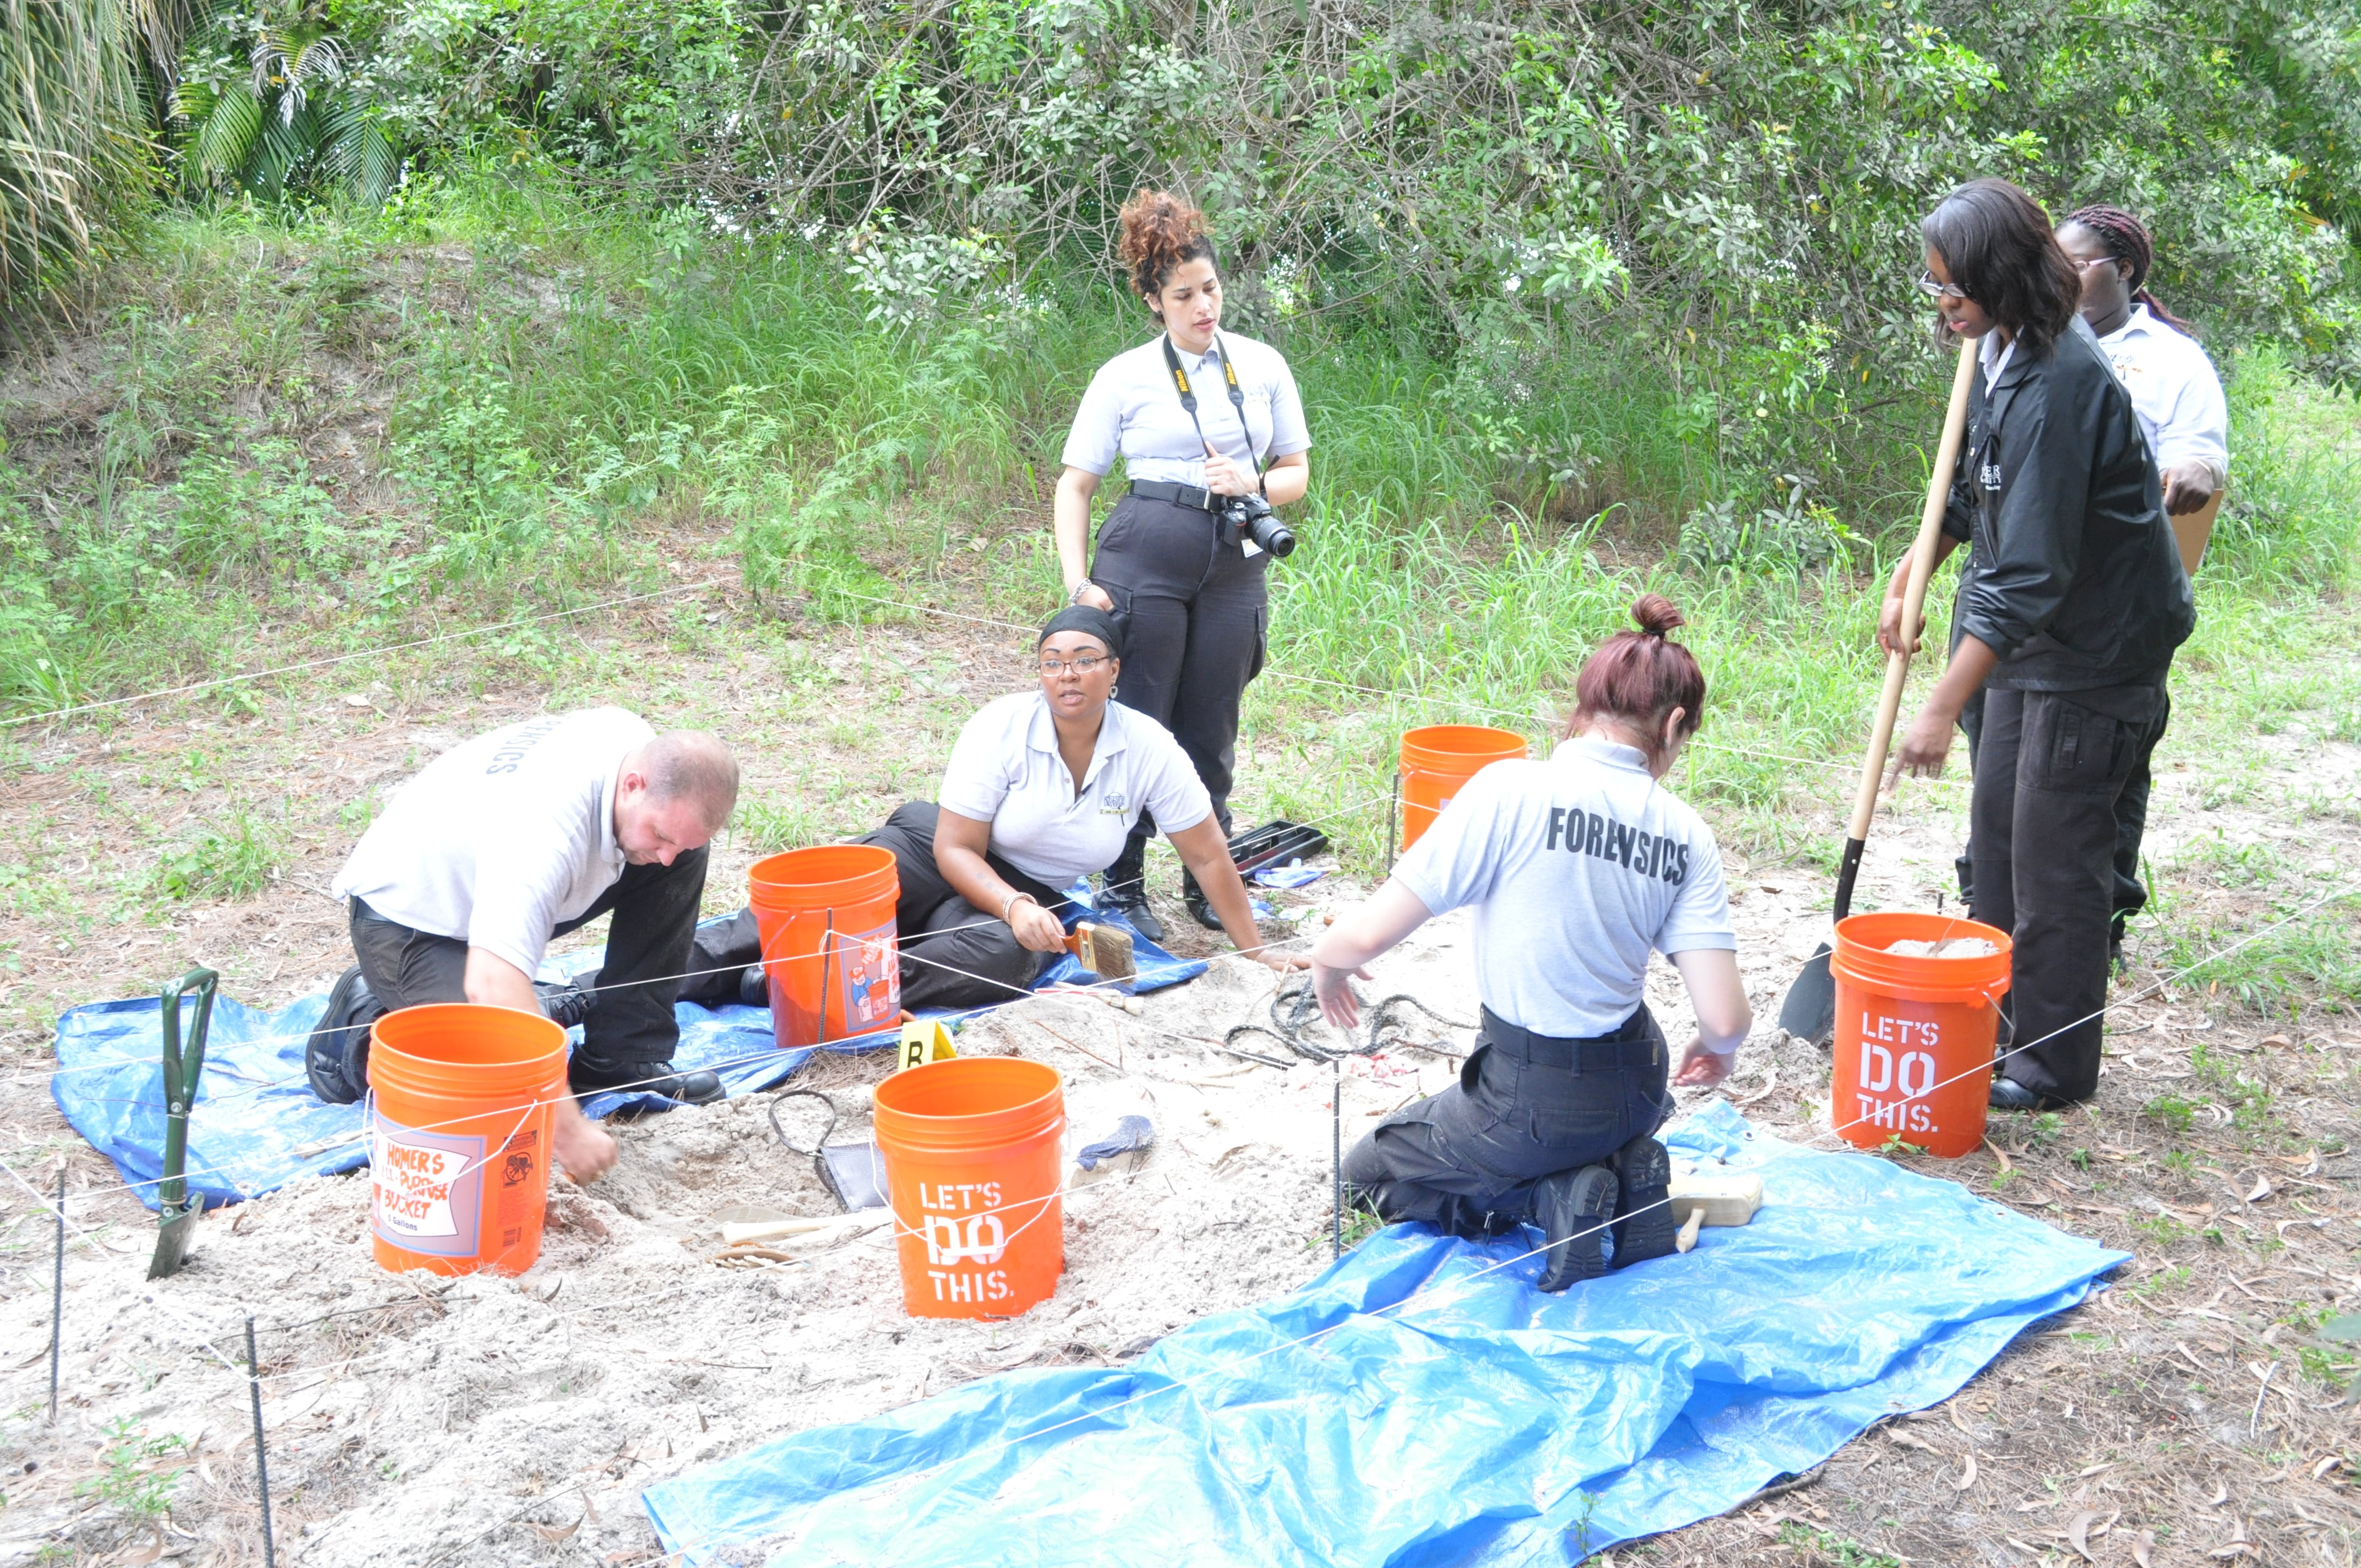 Uncovering Buried Evidence at the West Palm Beach Campus